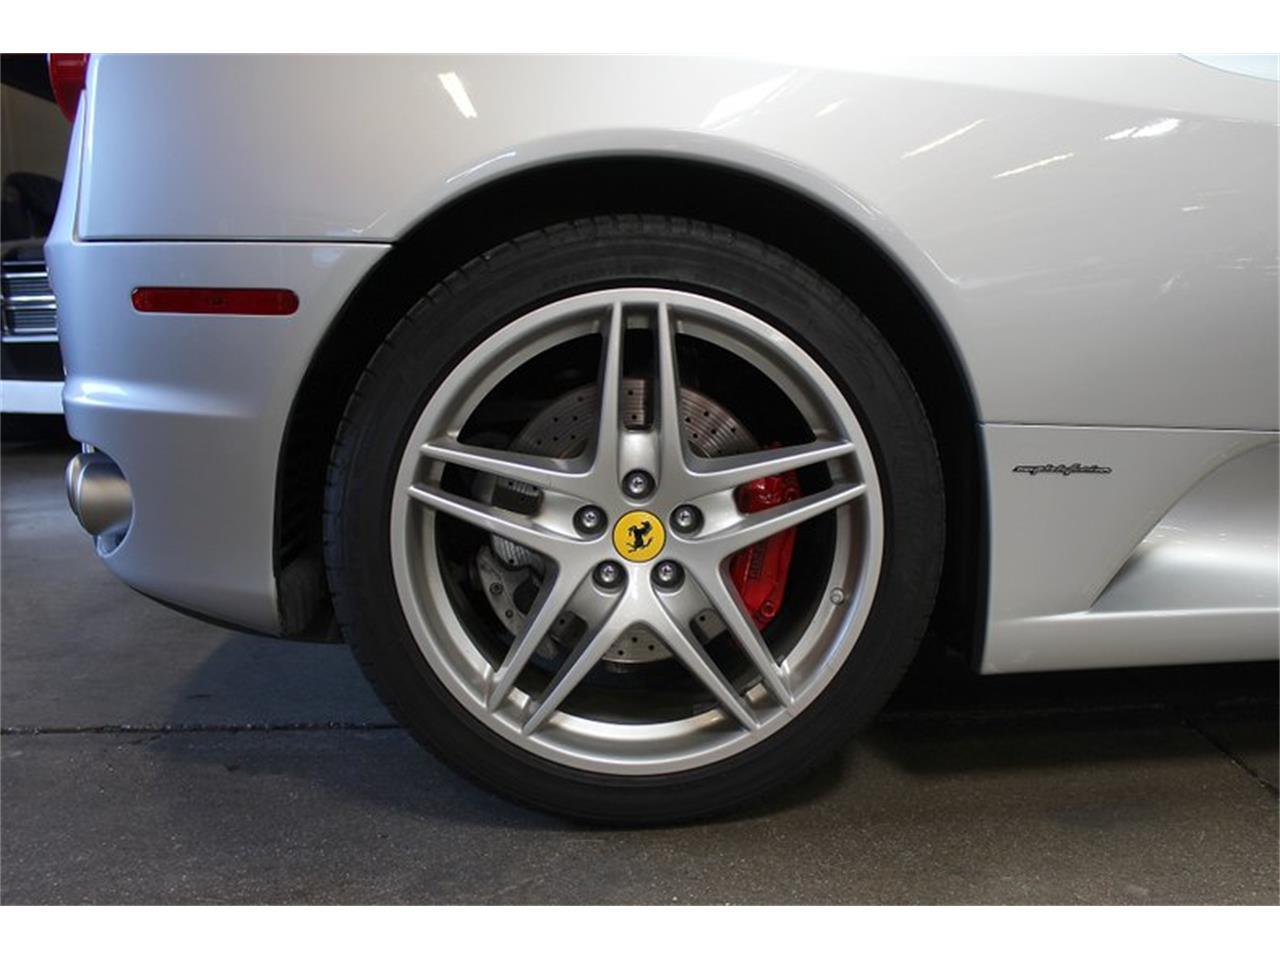 2005 Ferrari F430 for sale in San Carlos, CA – photo 12